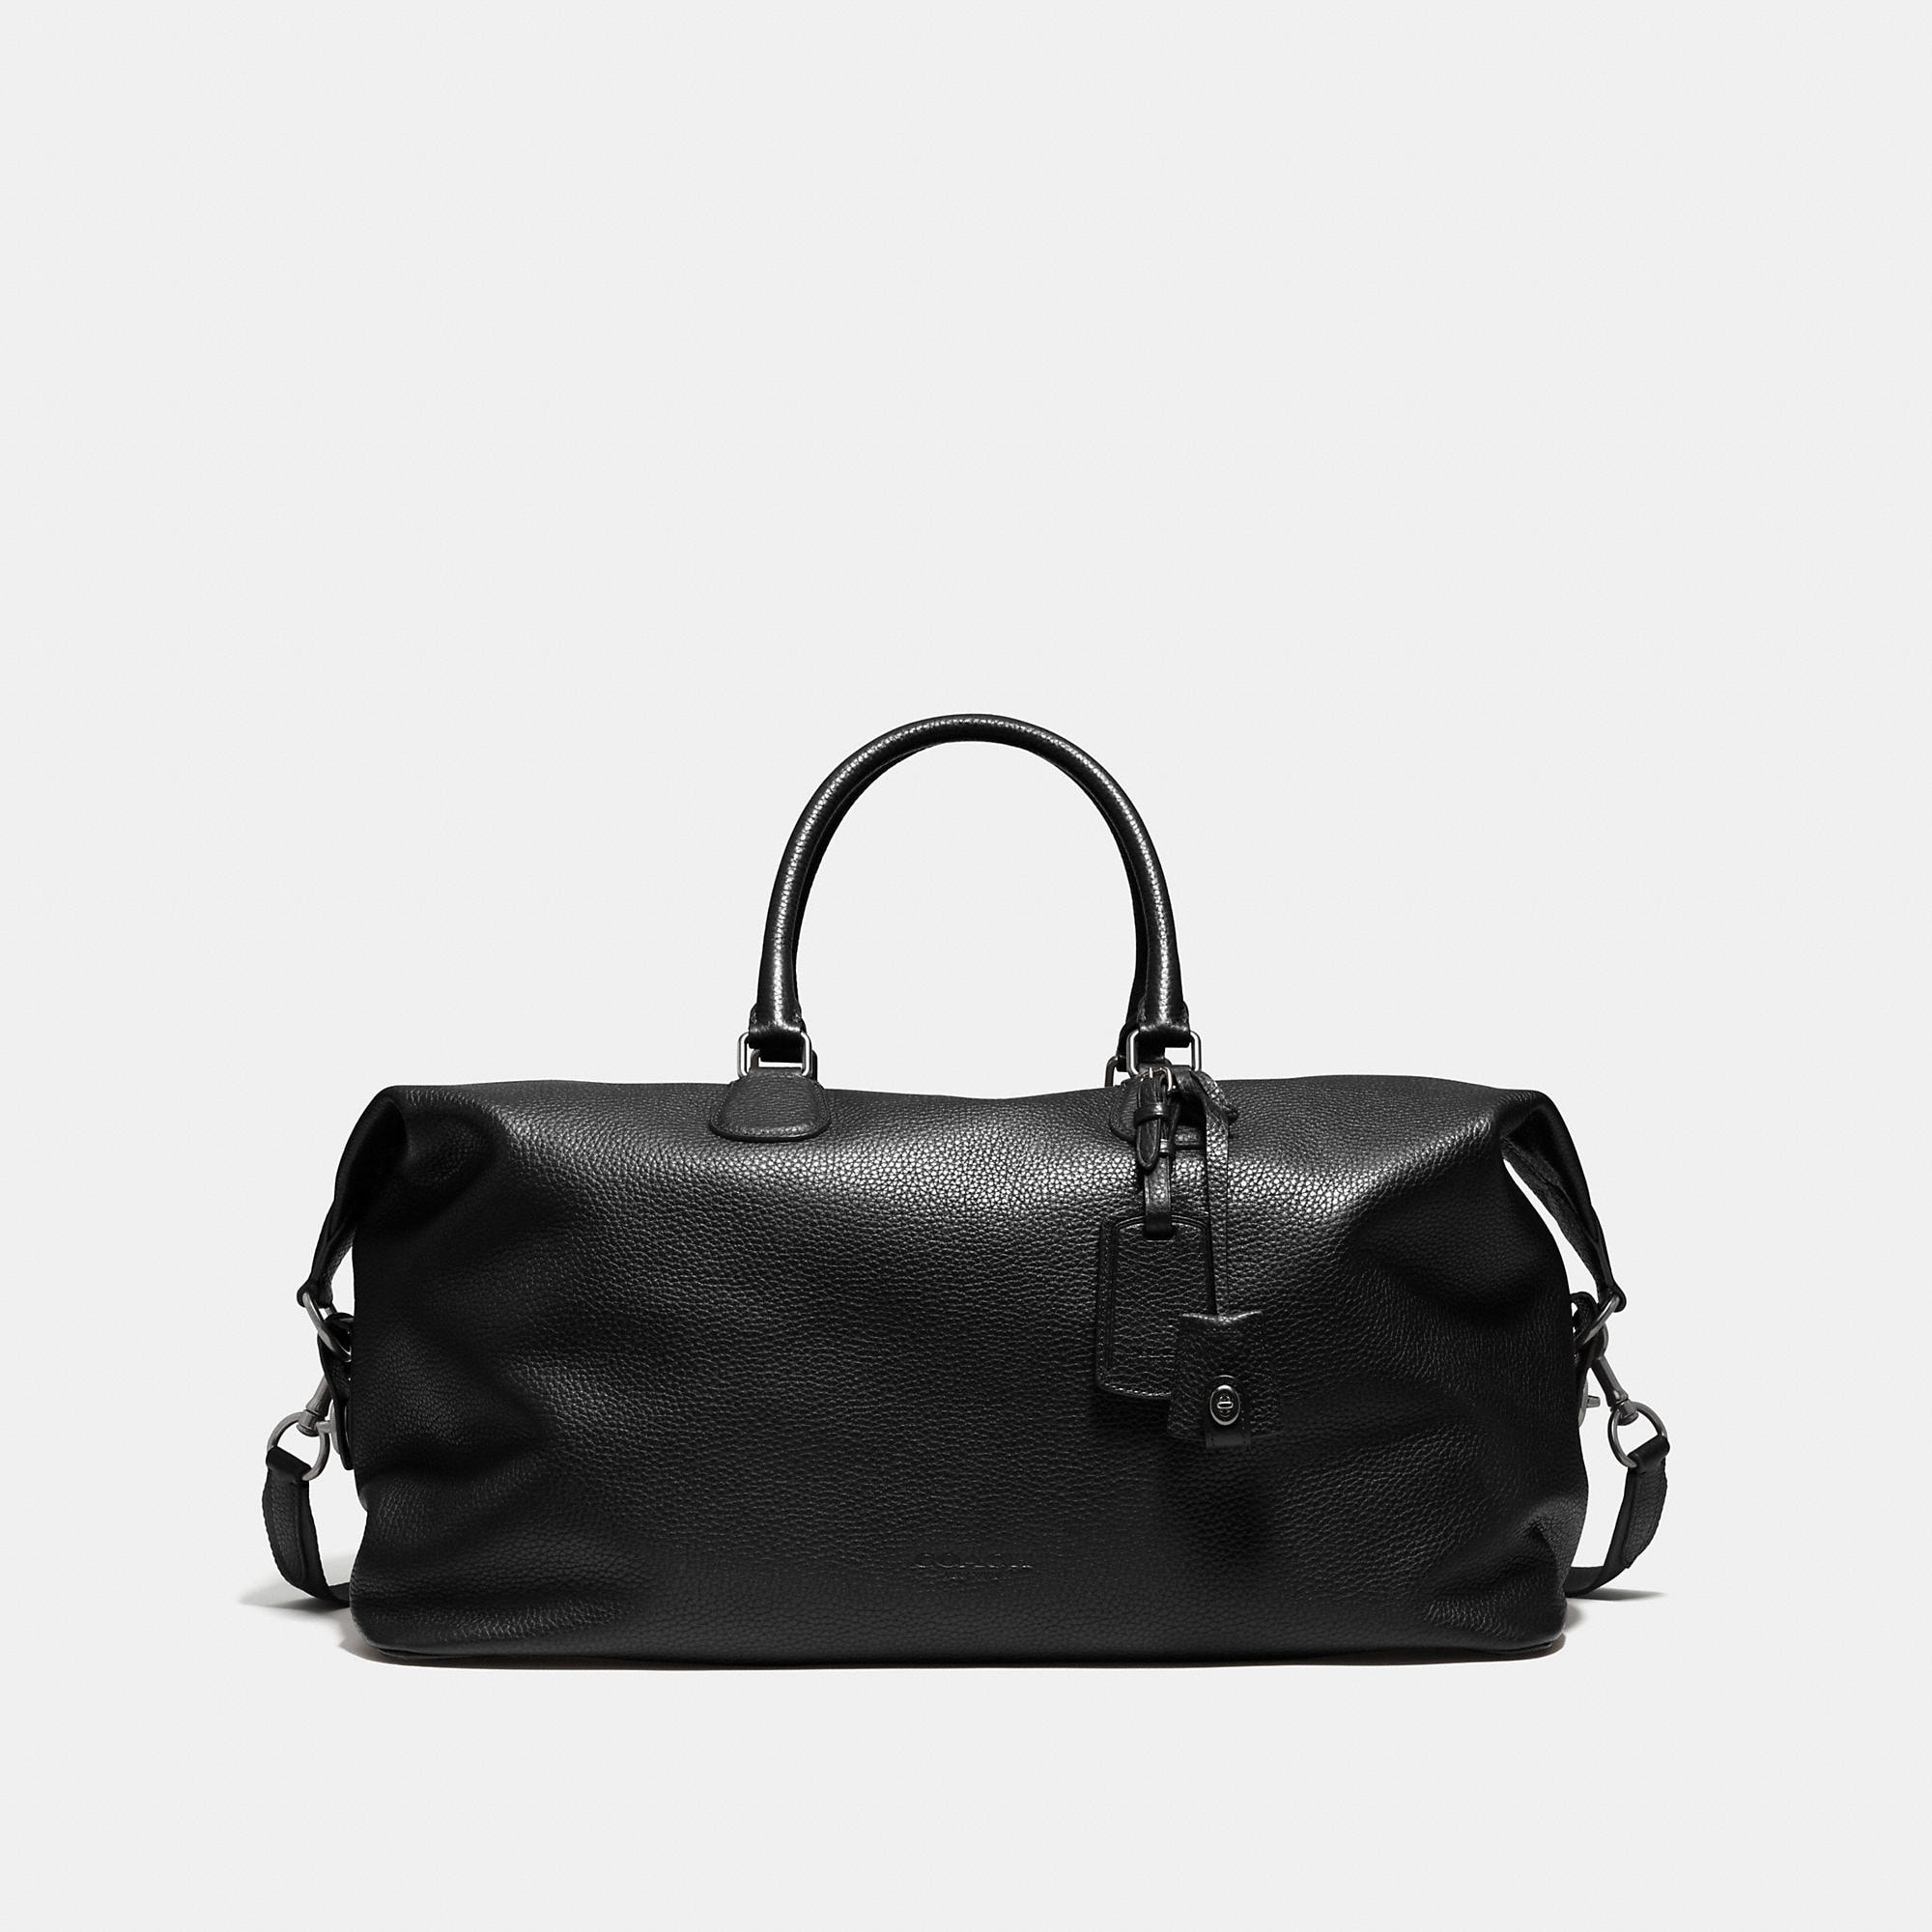 Coach Explorer Bag 52 In Pebble Leather